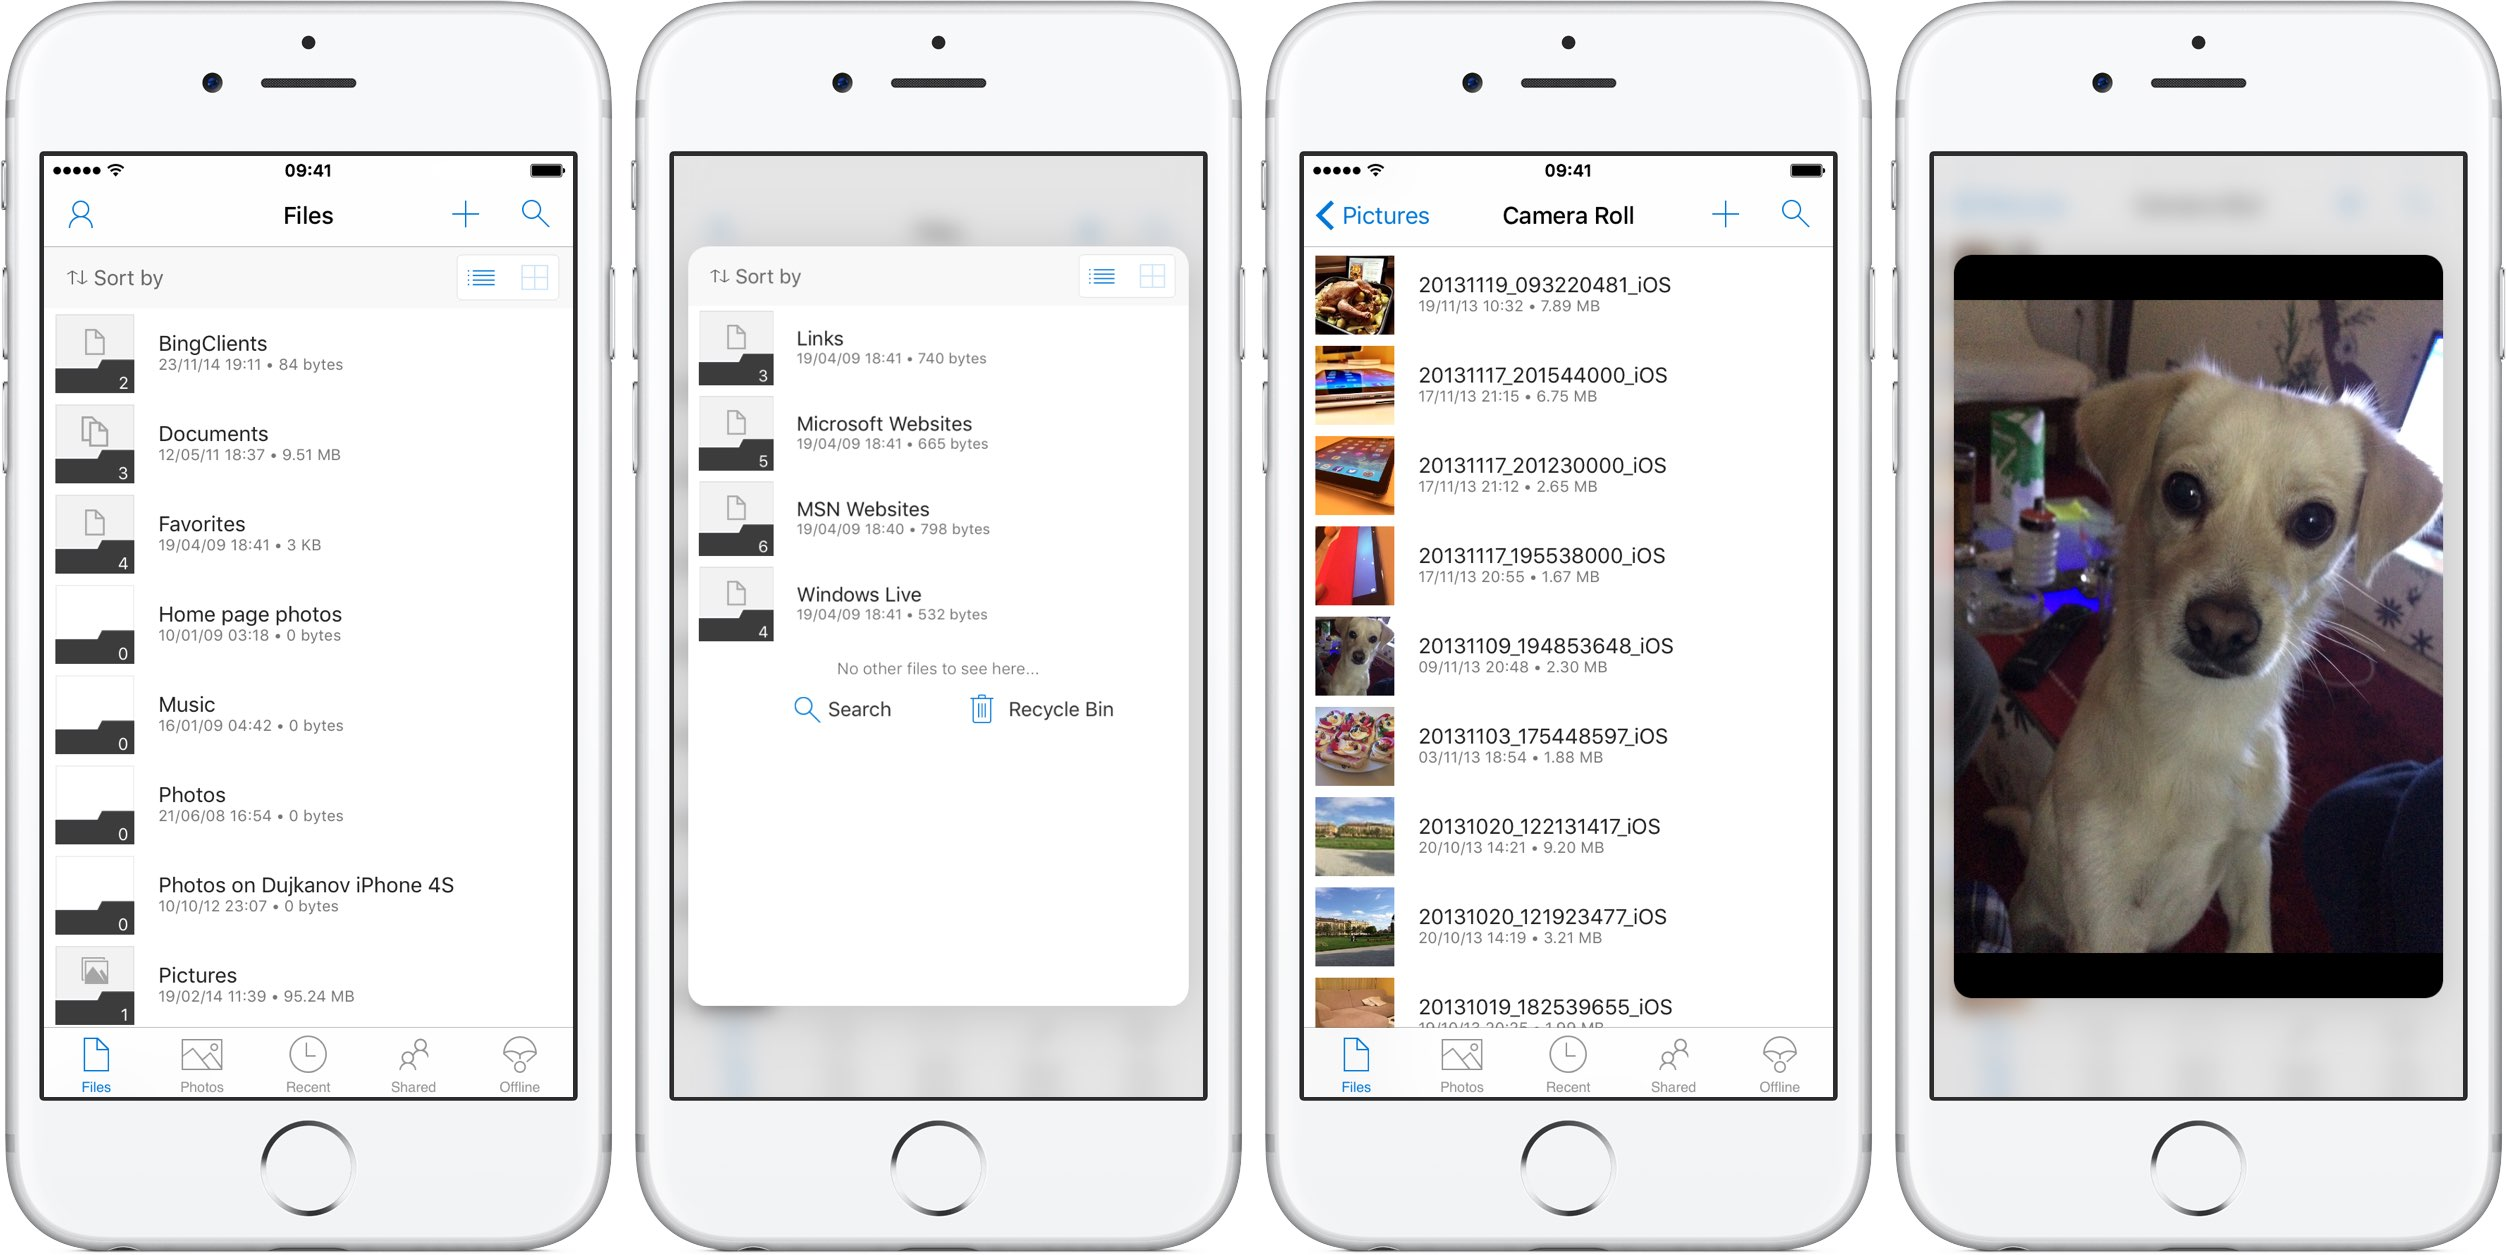 OneDrive 7.1 for iOS iPhone screenshot 001